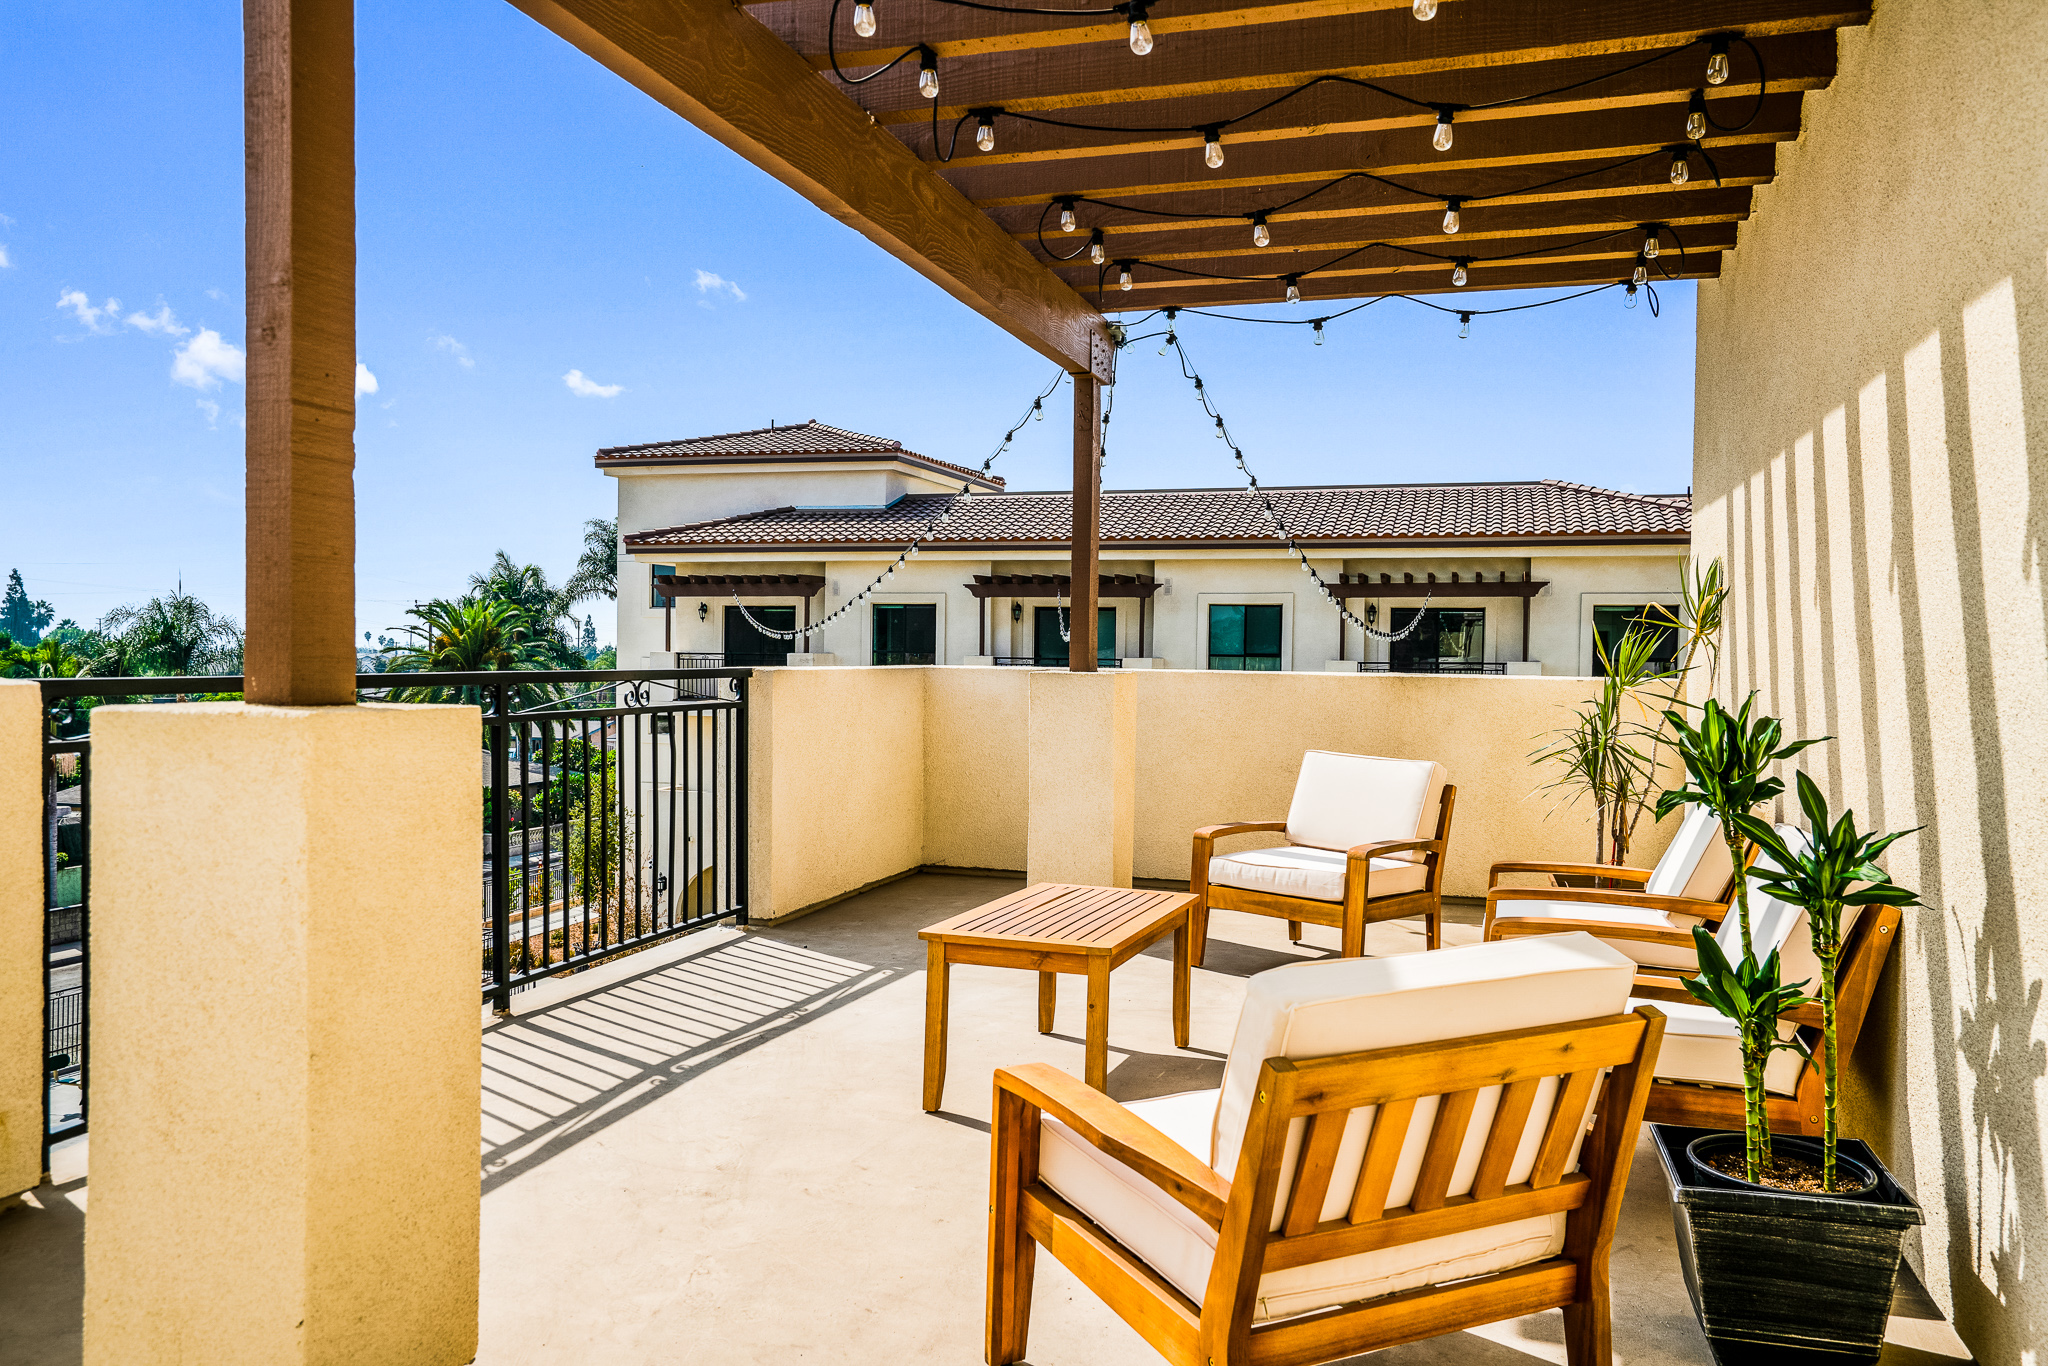 Communal outdoor balcony area featuring cushioned wood furniture at Gladstone Senior Villas.